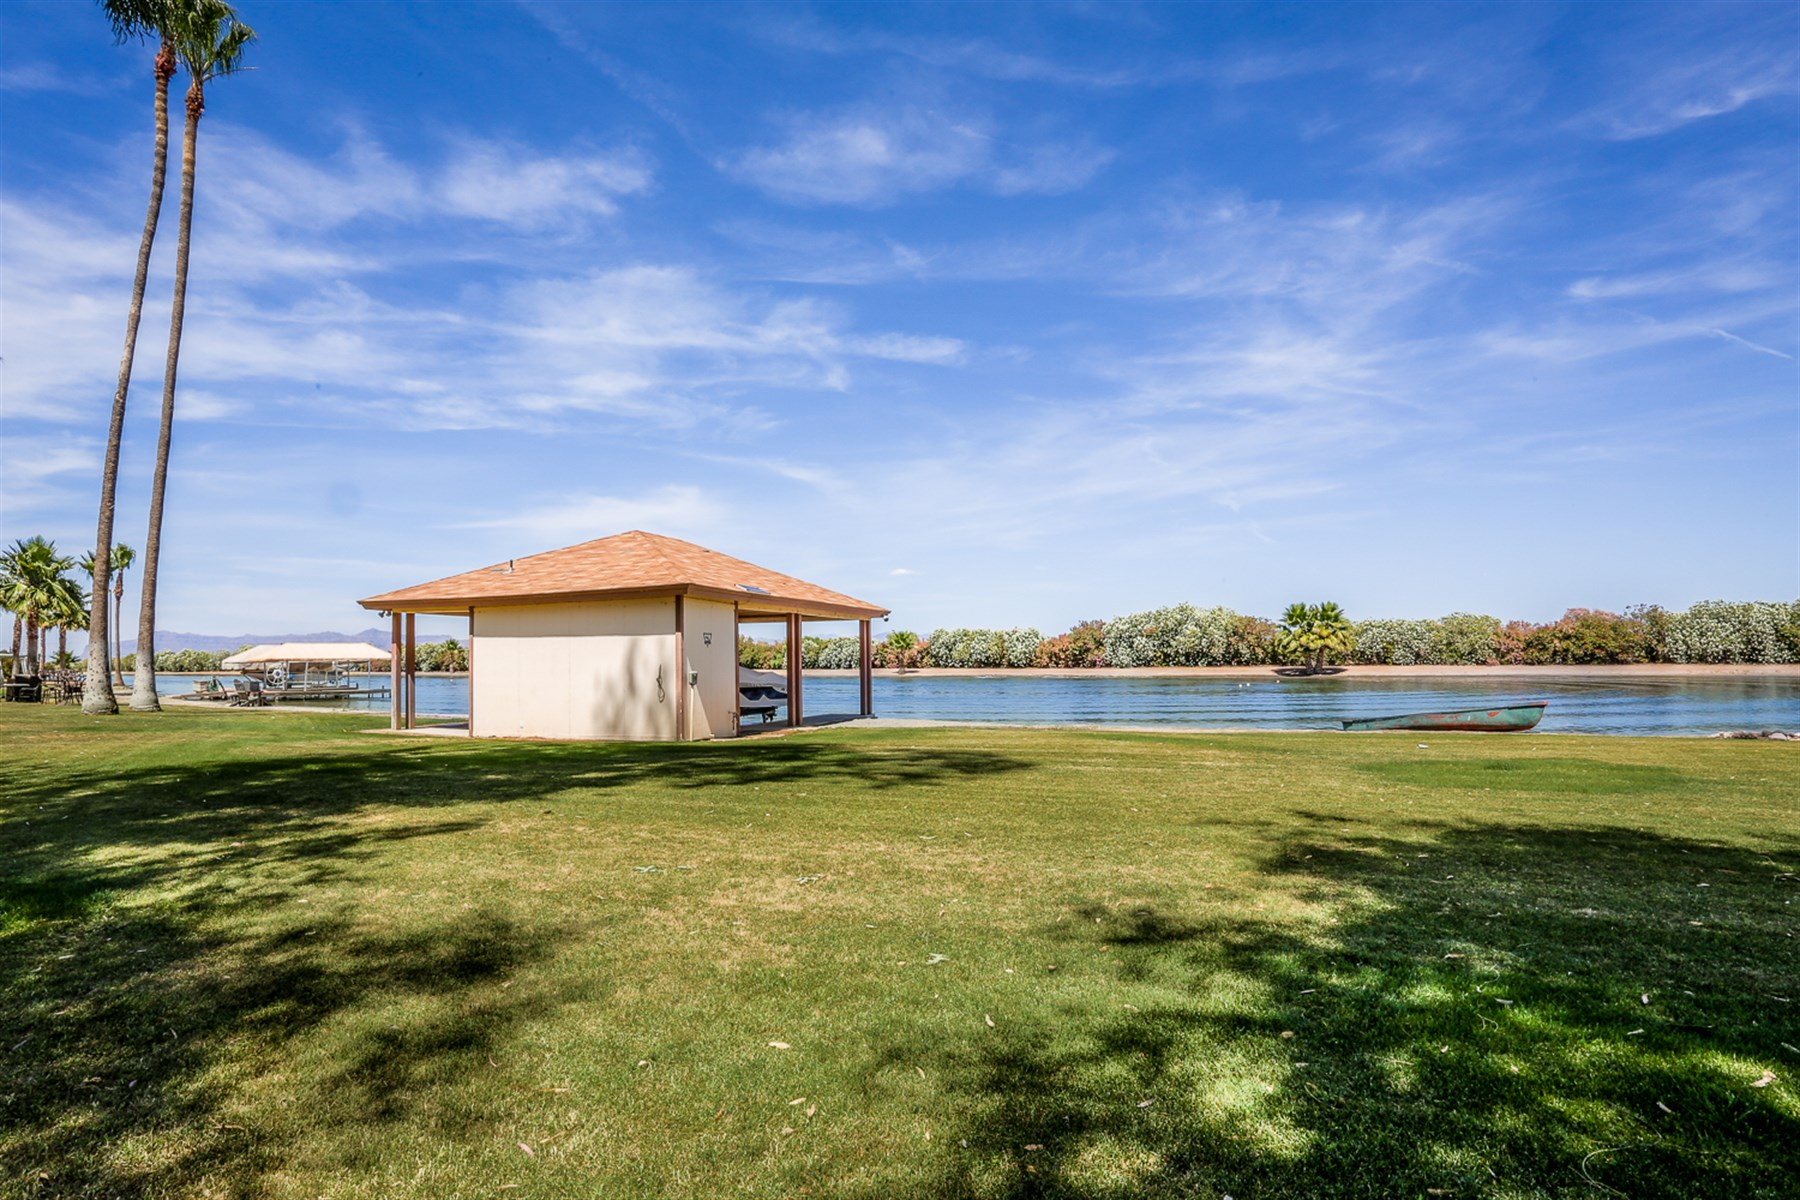 土地 のために 売買 アット Rare and unique opportunity to own a 1/2 acre lot on a tournament ski lake 8554 E Lake Rd San Tan Valley, アリゾナ, 85143 アメリカ合衆国